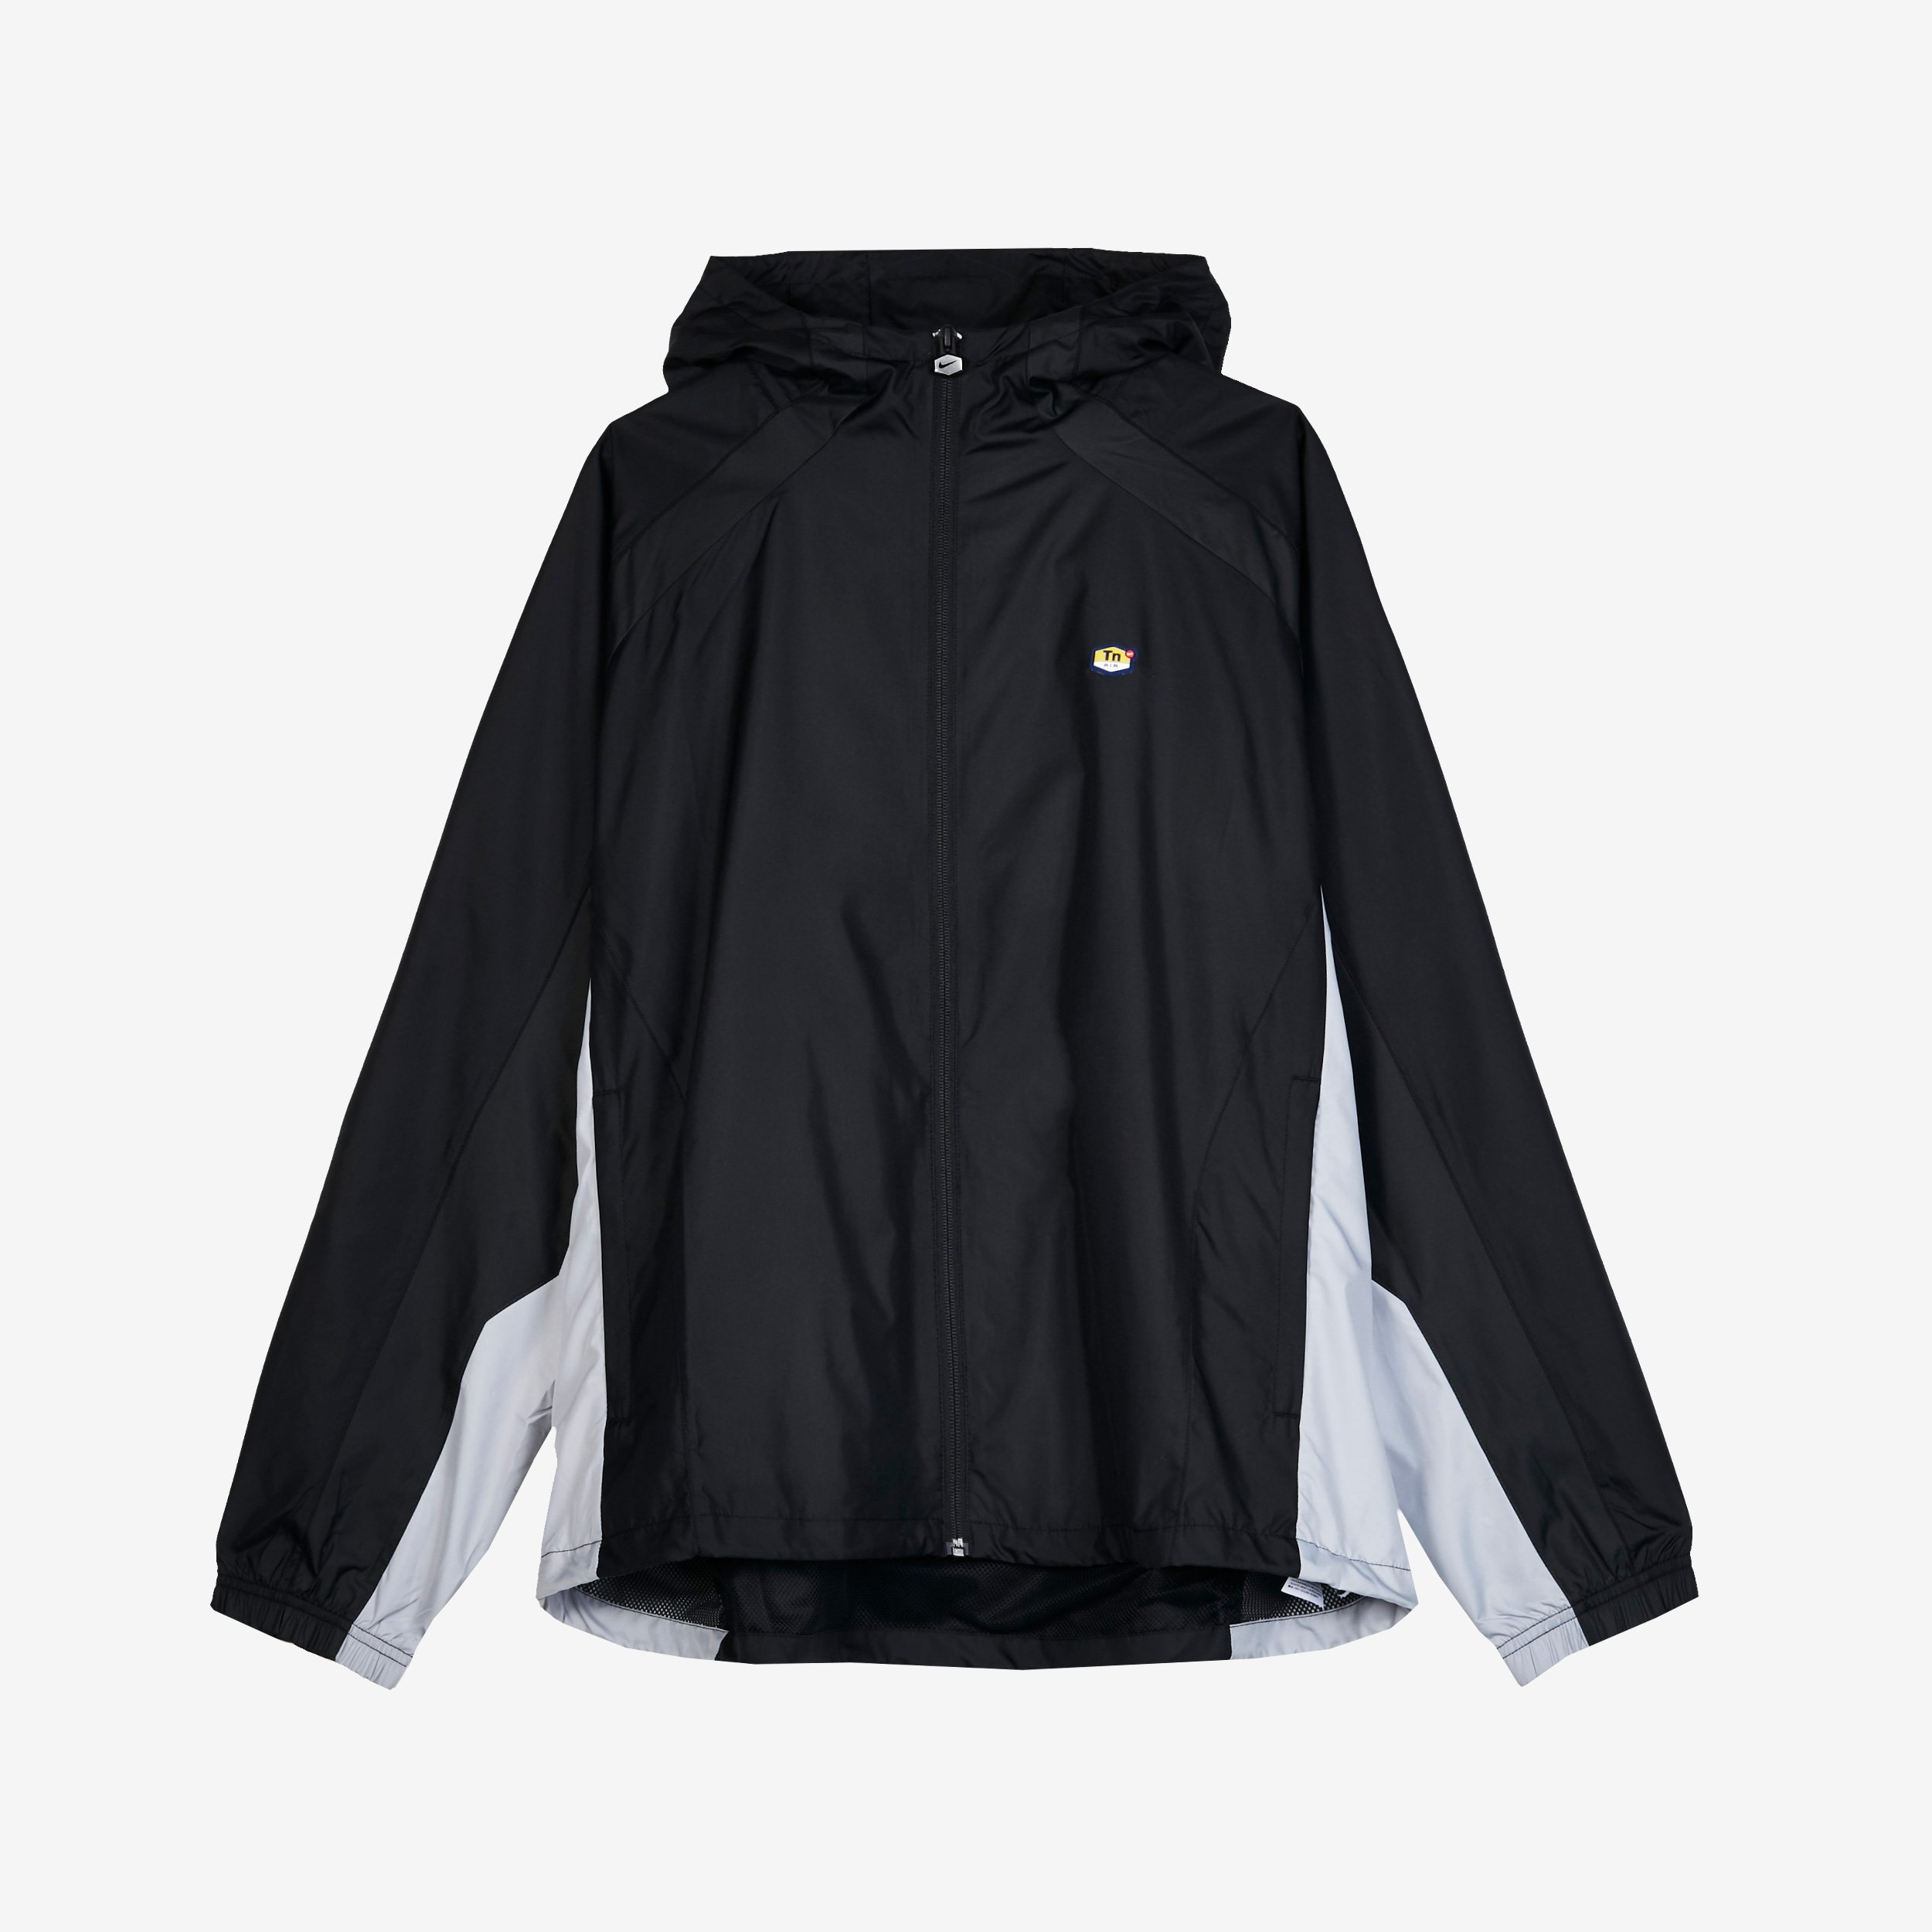 new style 851c4 4d9d2 Nike Tn Track Jacket - Ar5793-010 - Sneakersnstuff ...